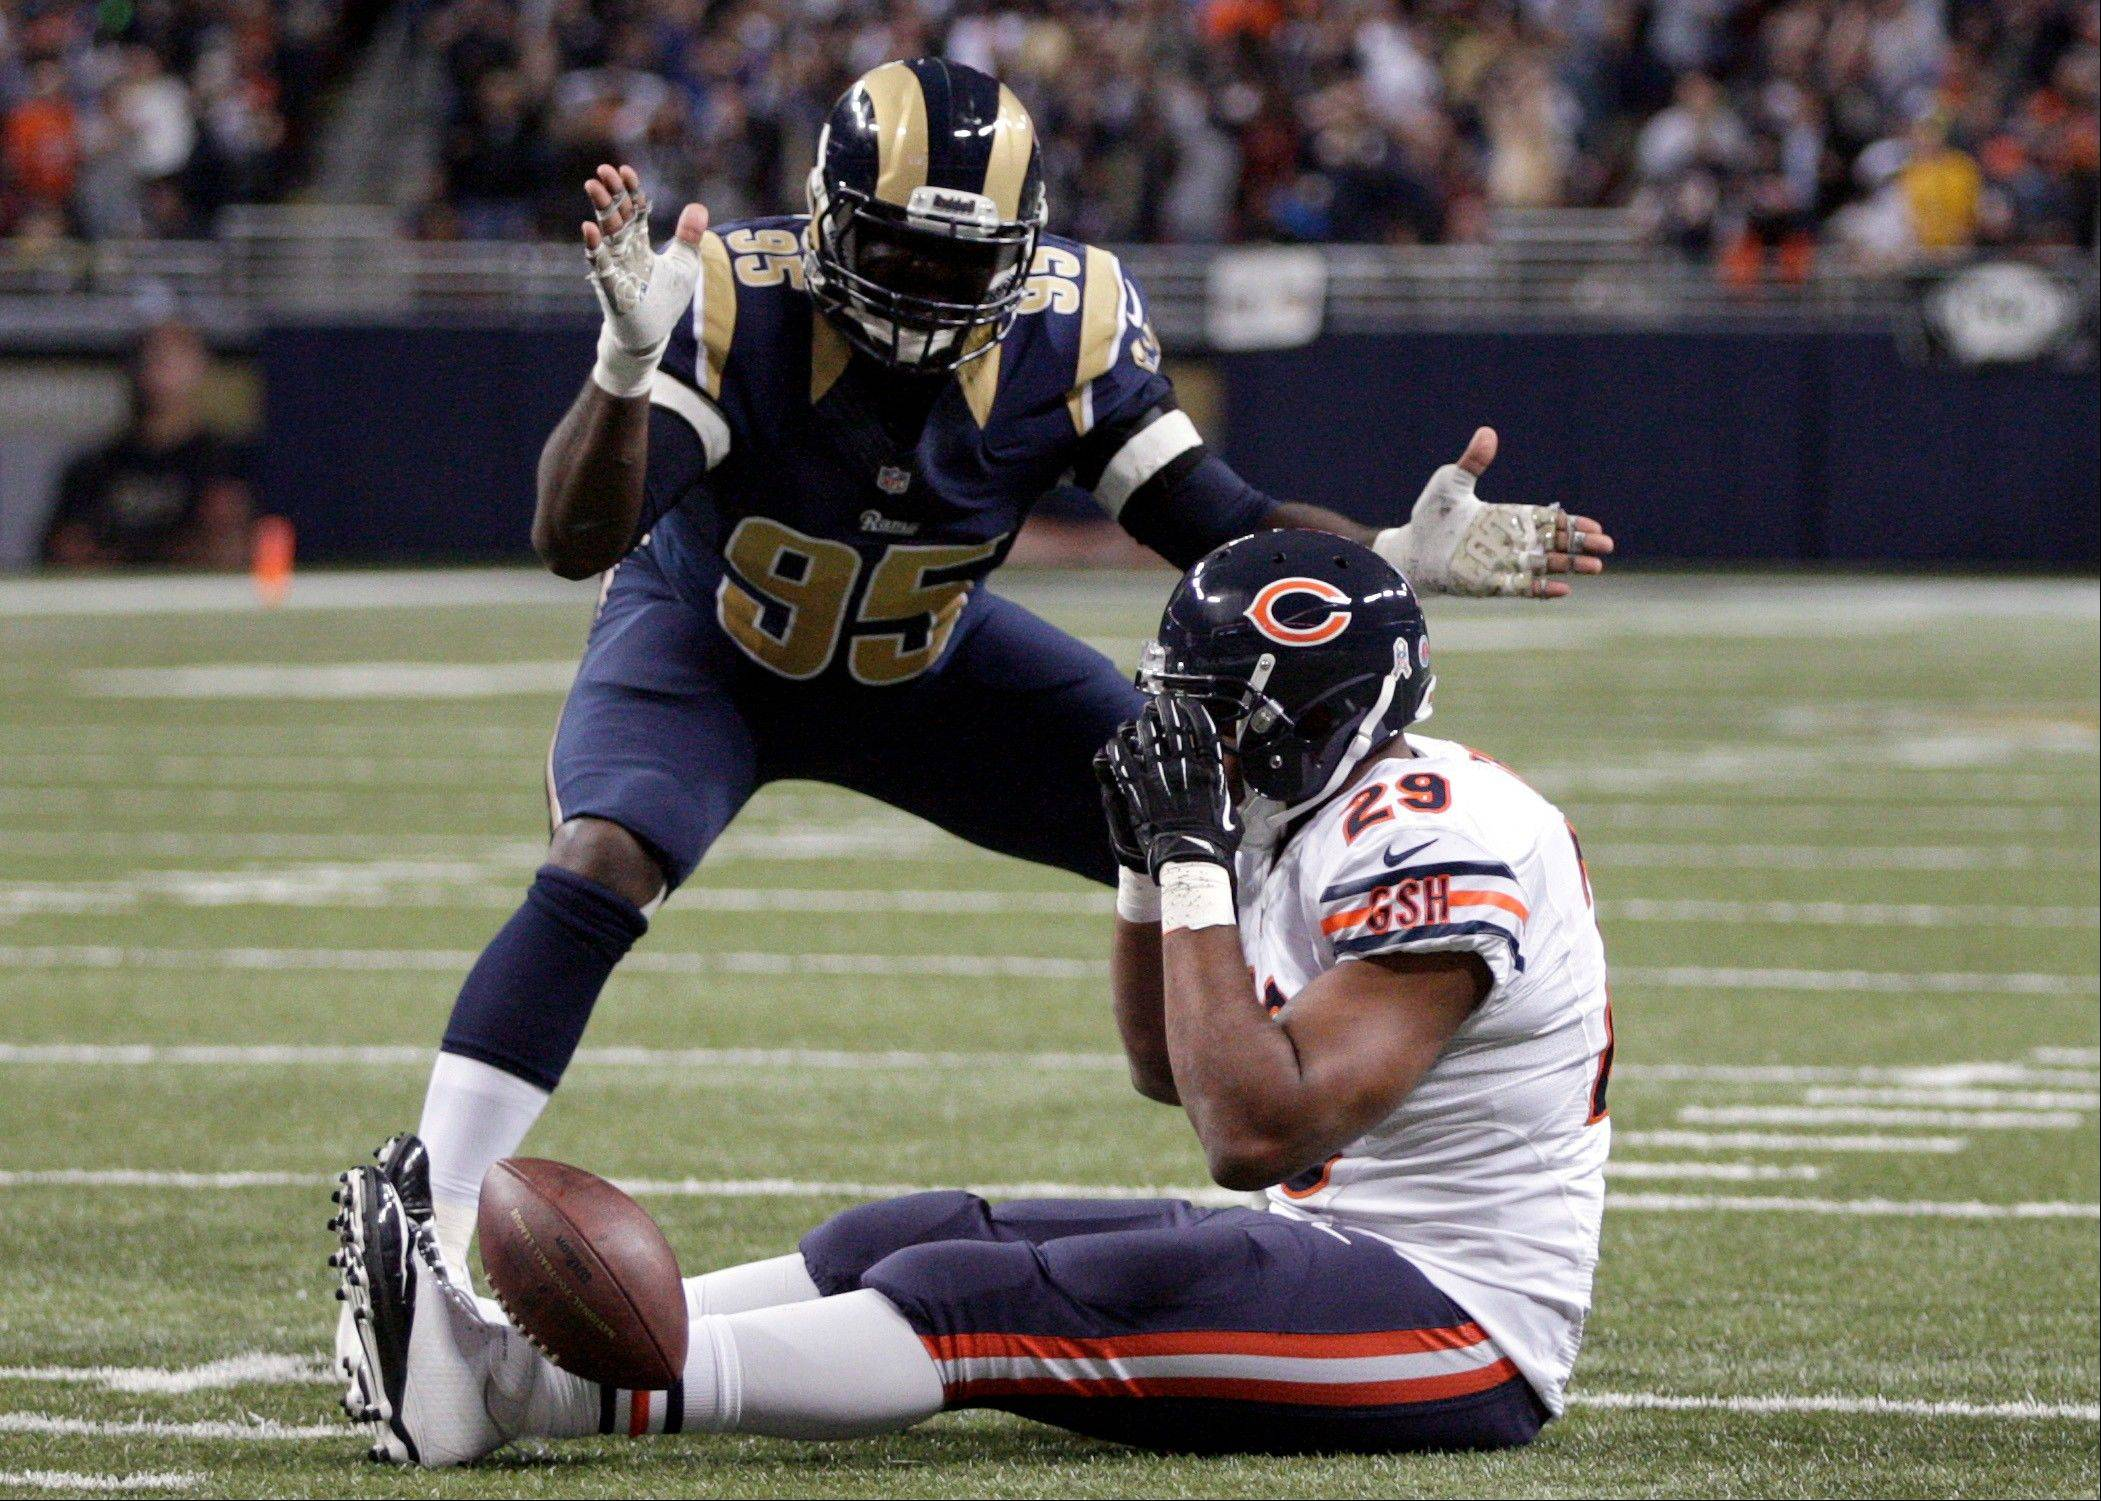 St. Louis Rams defensive end William Hayes celebrates after Bears running back Michael Bush was stopped short of the end zone for a 4-yard loss Sunday.